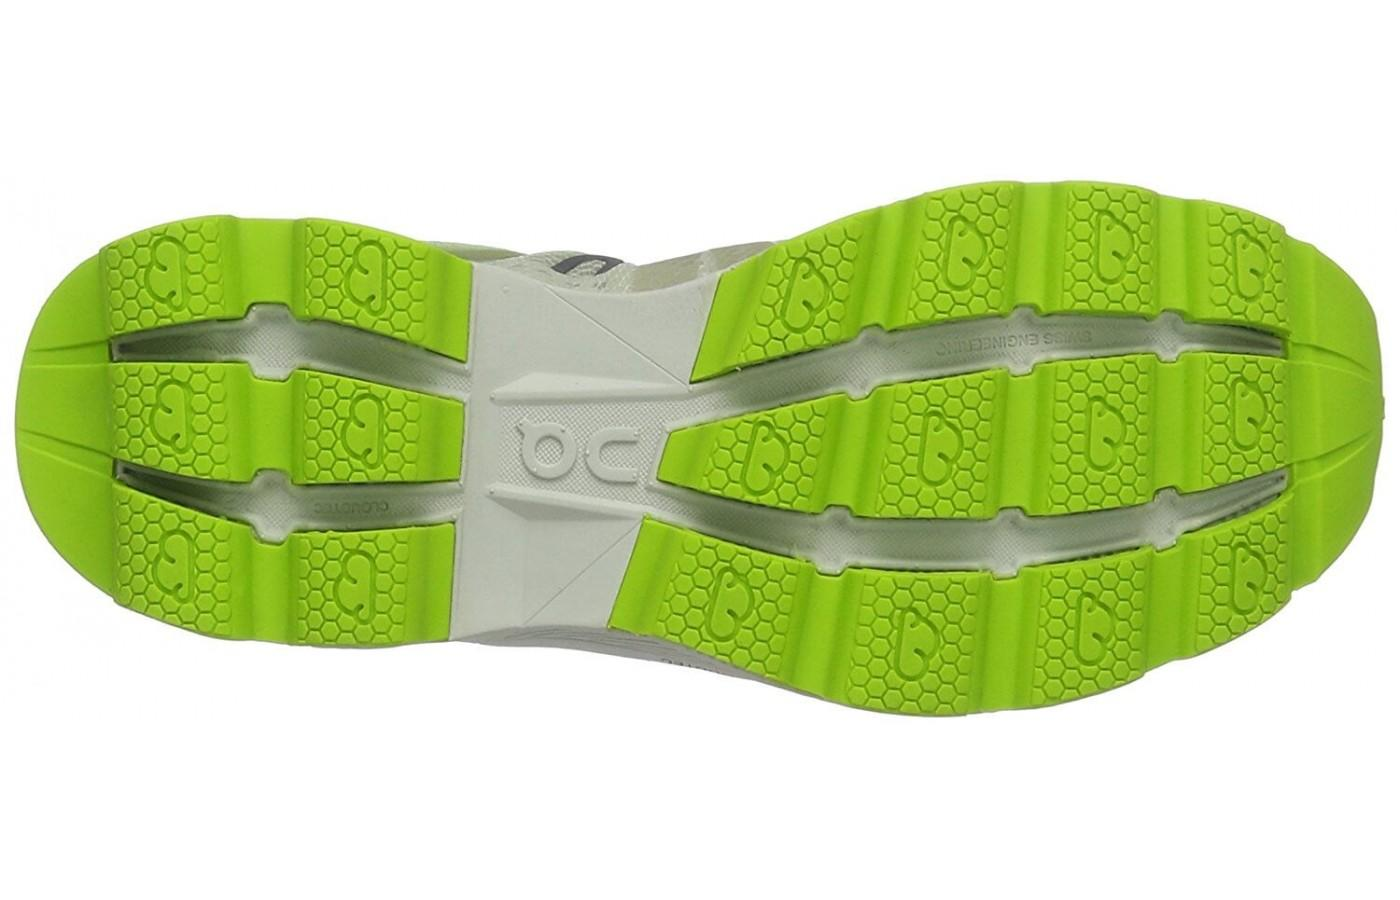 a view of the pods on the outsole of the Cloudracer running shoe